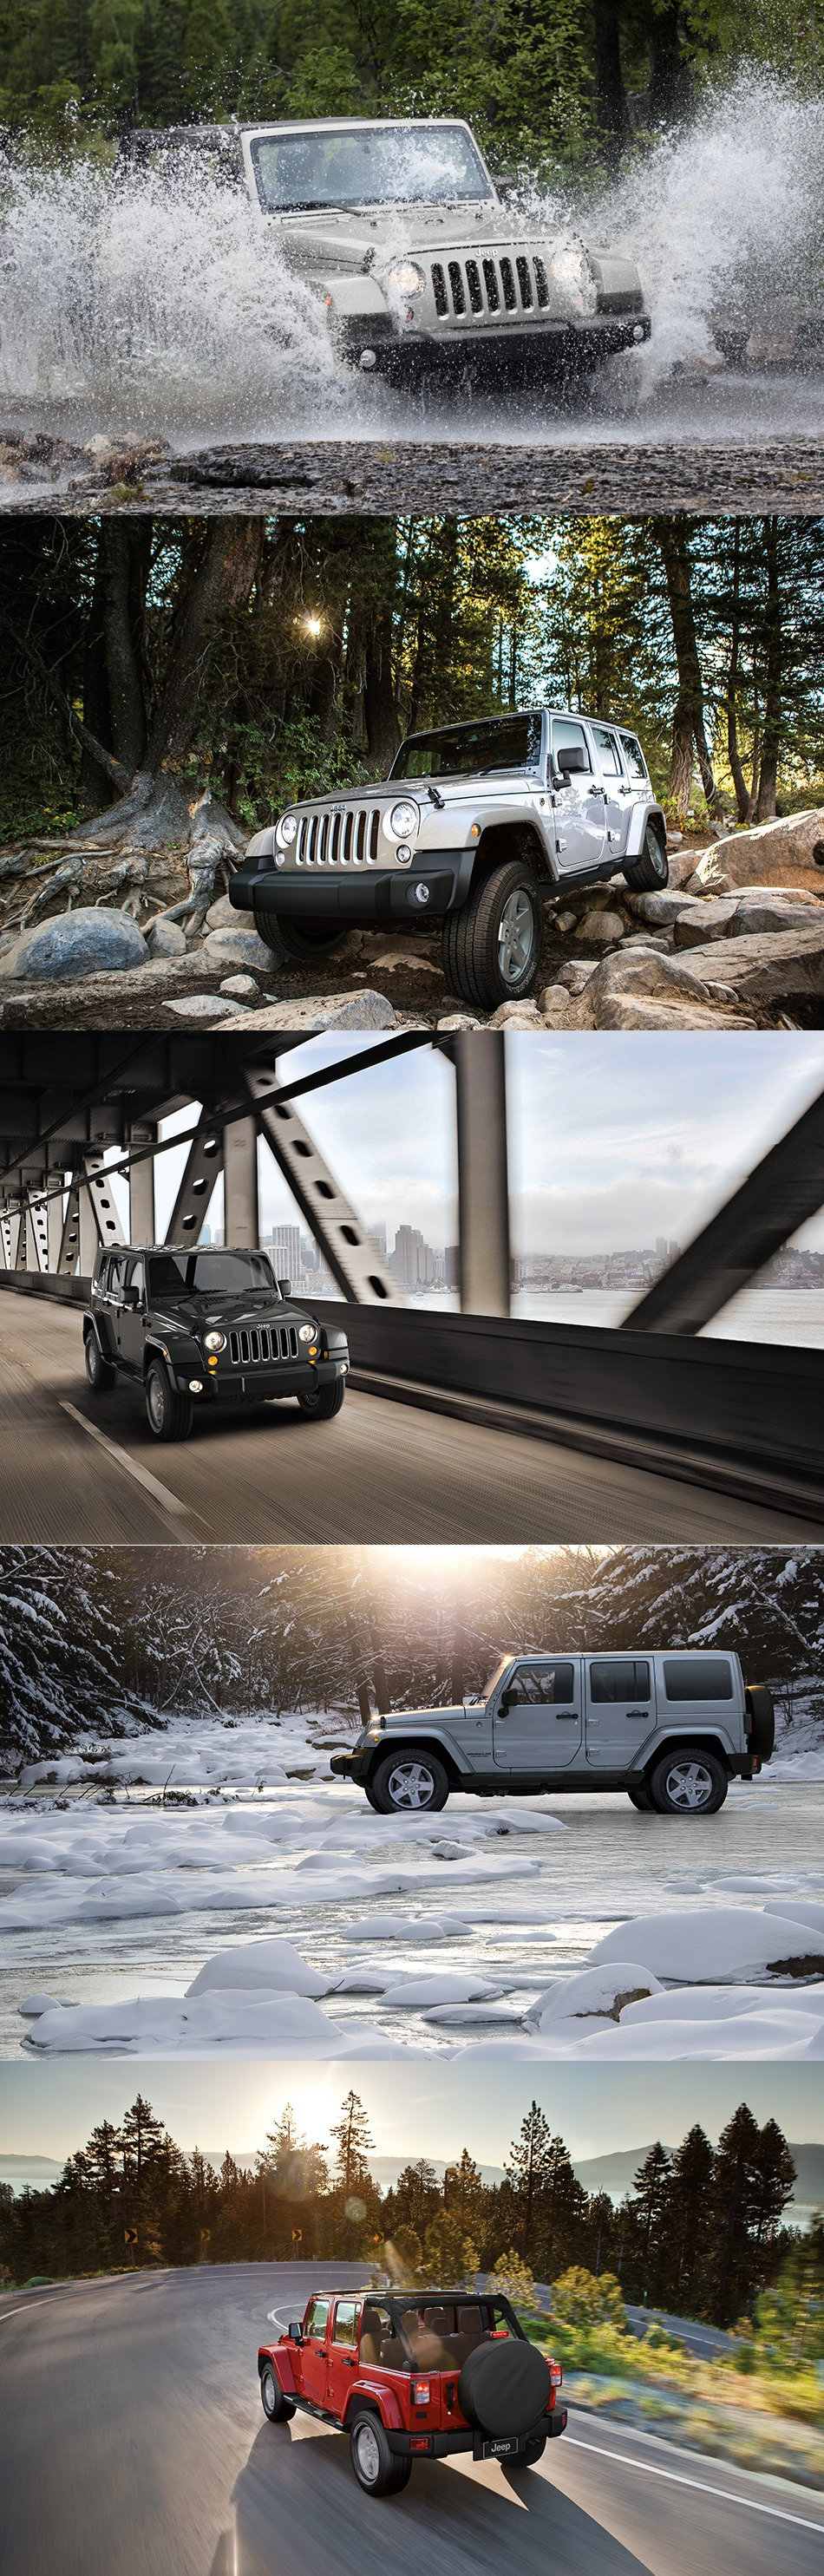 Jeep Wrangler Petrol Launched In India At Inr 56 Lakh With Images Jeep Wrangler Jeep Petrol